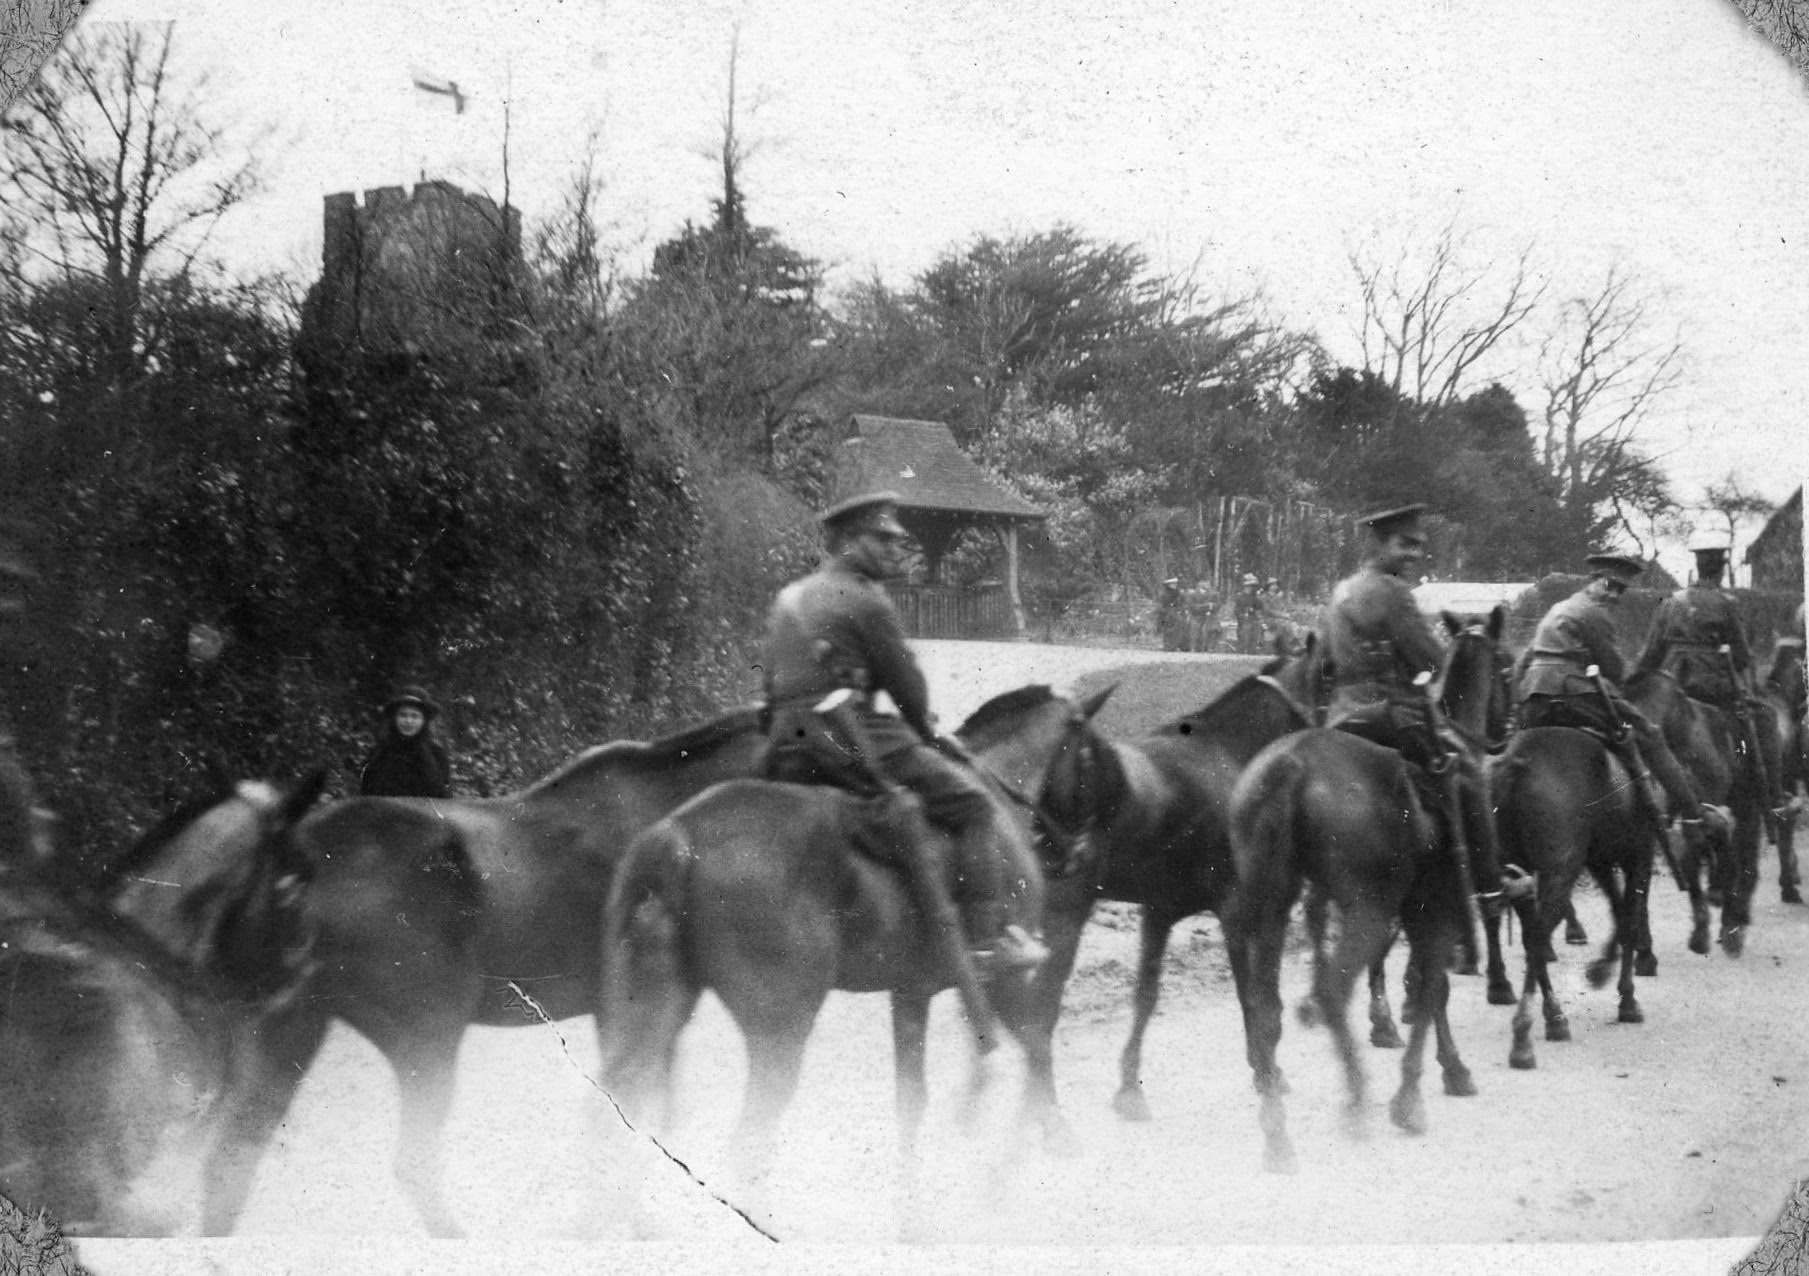 Ightham village historical picture of soldiers on horseback